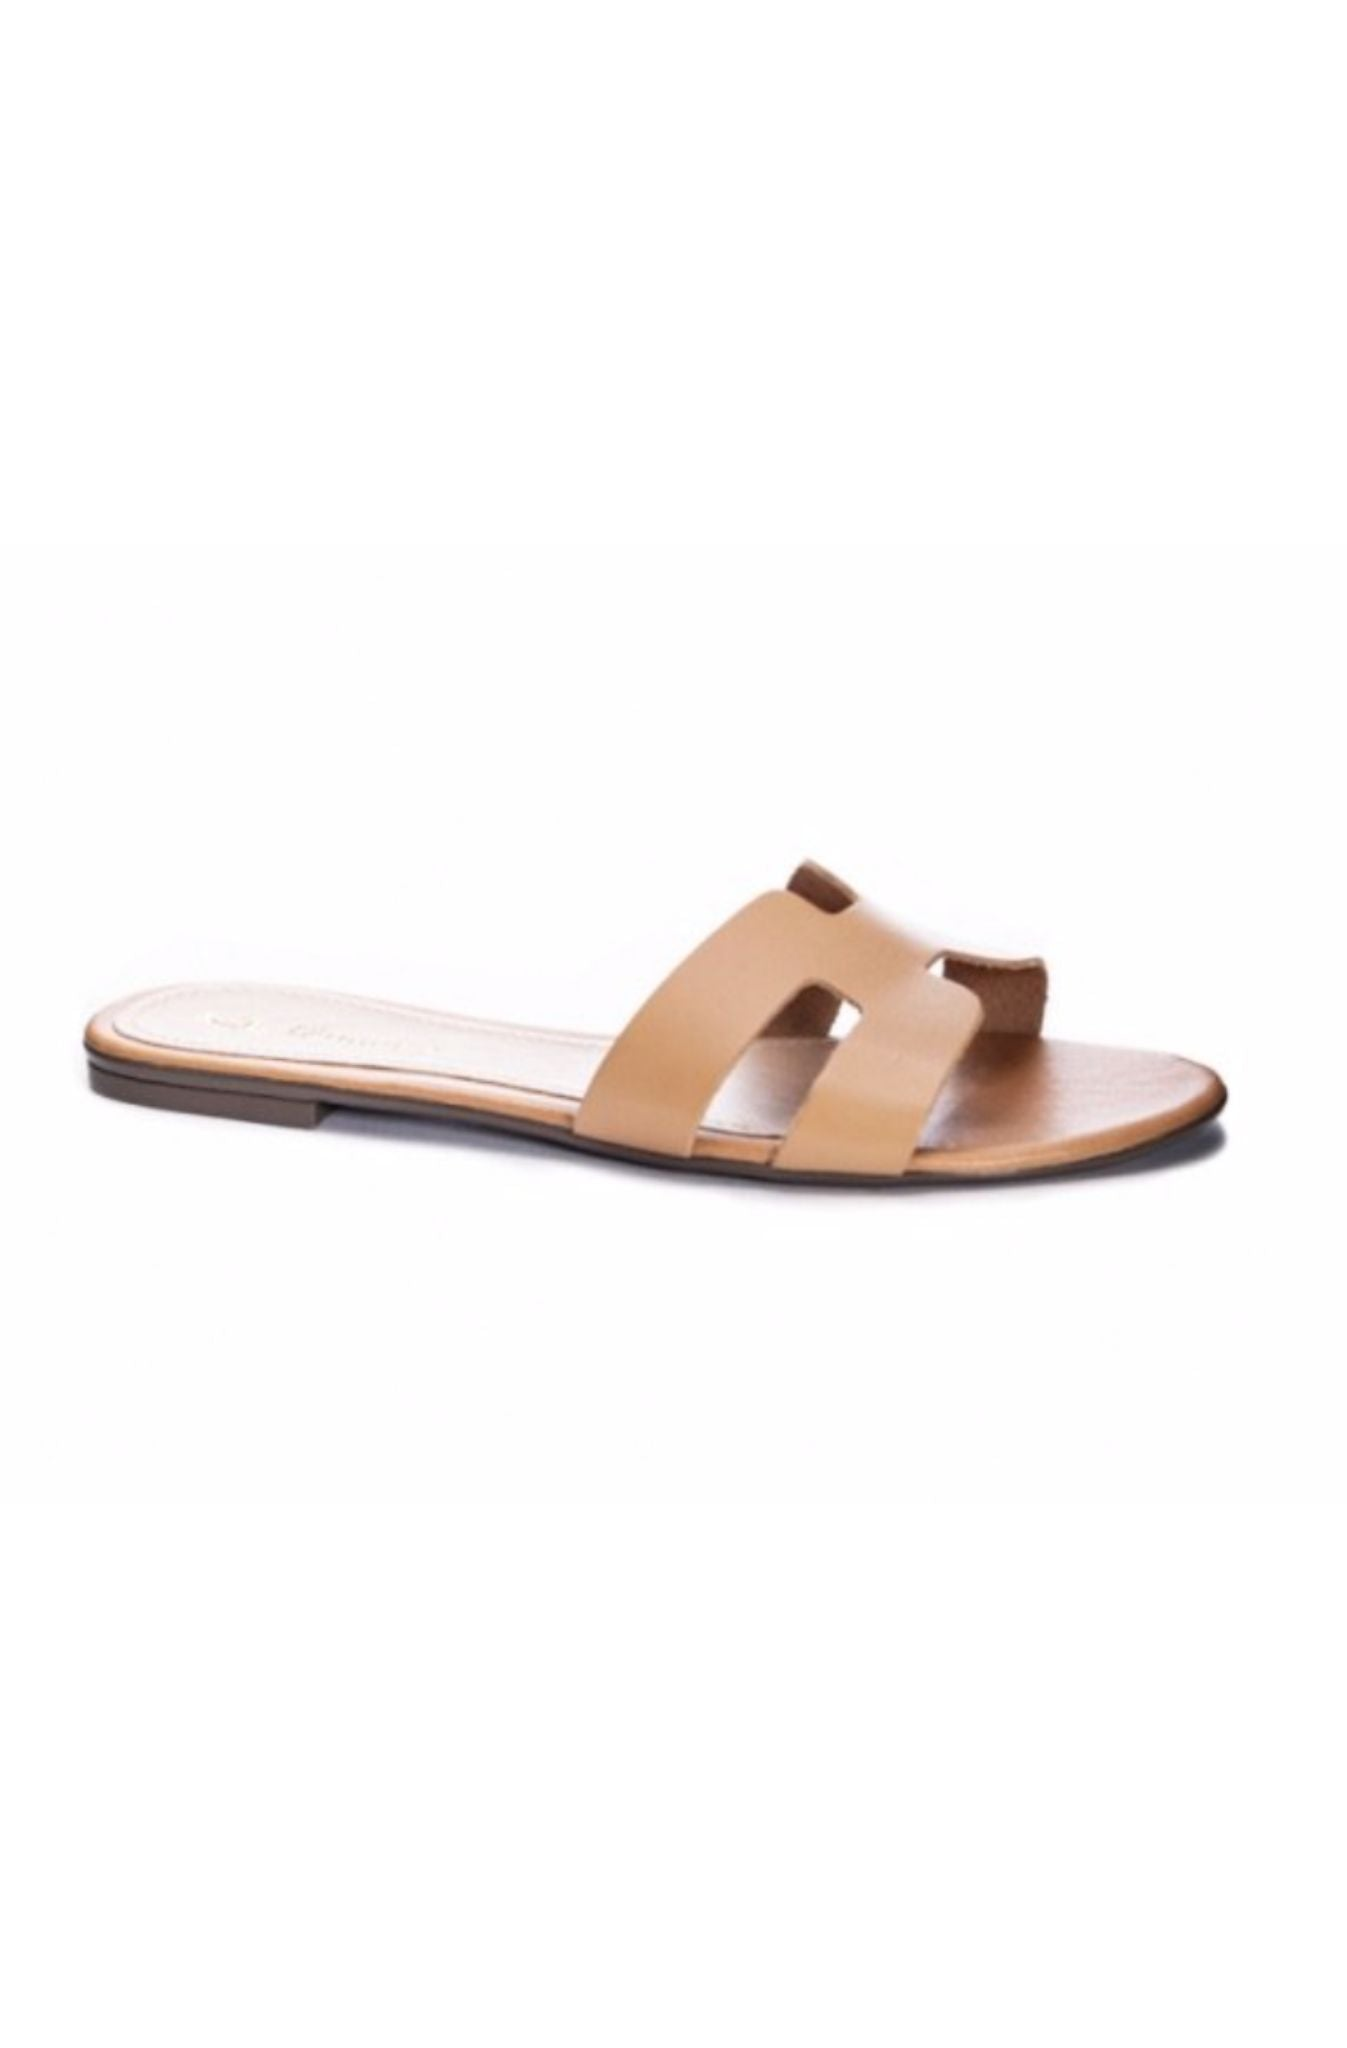 Natural Designer Inspired H Sandals